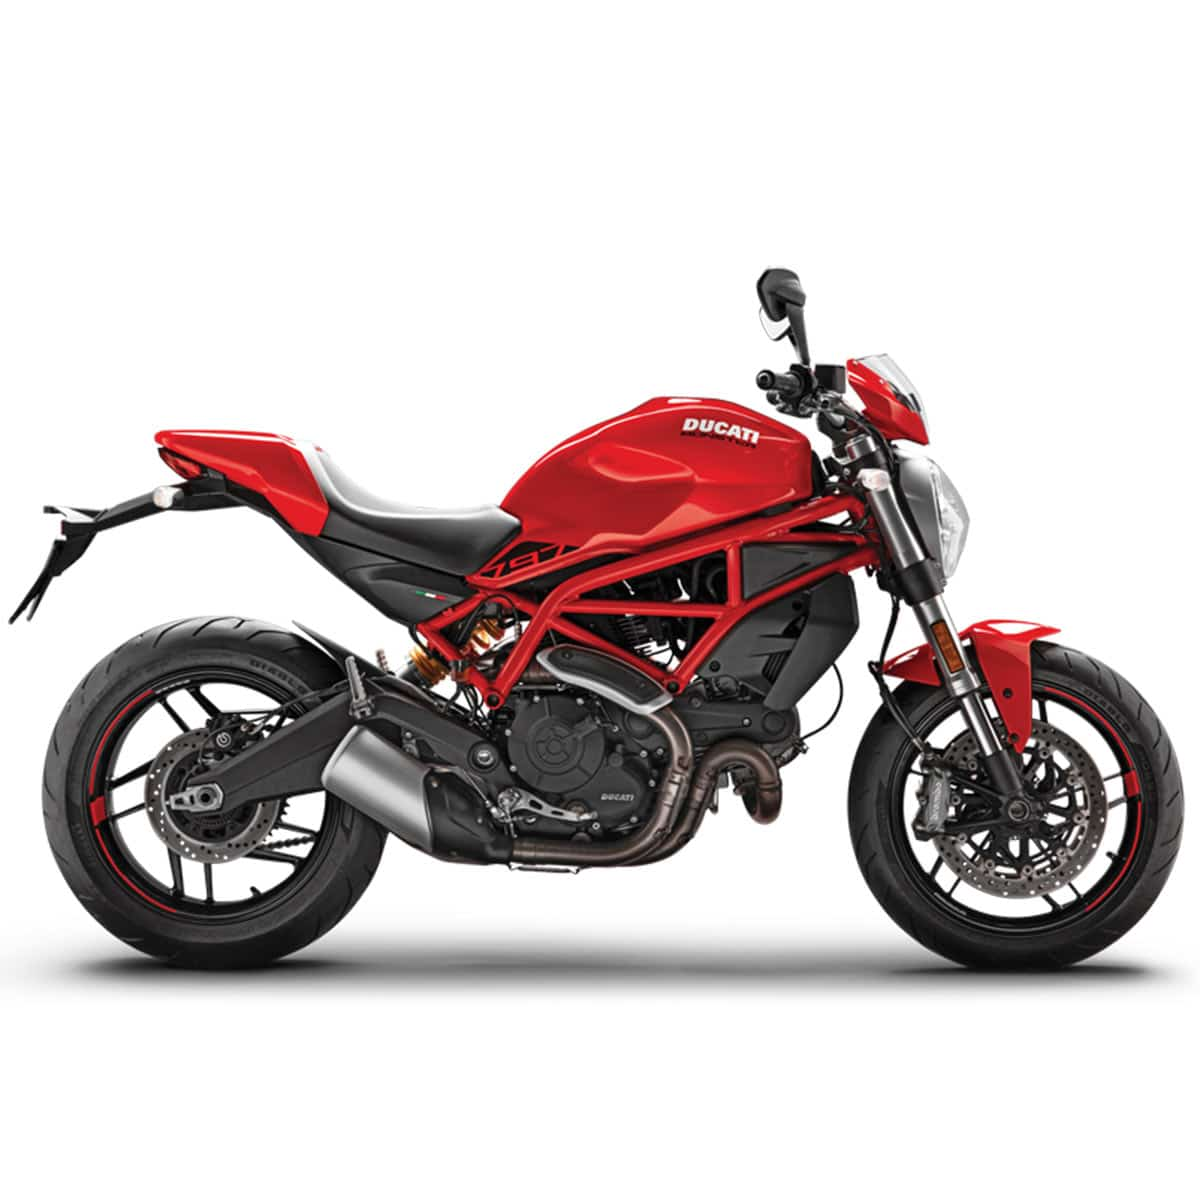 MONSTER-797-ROUGE-DUCATI